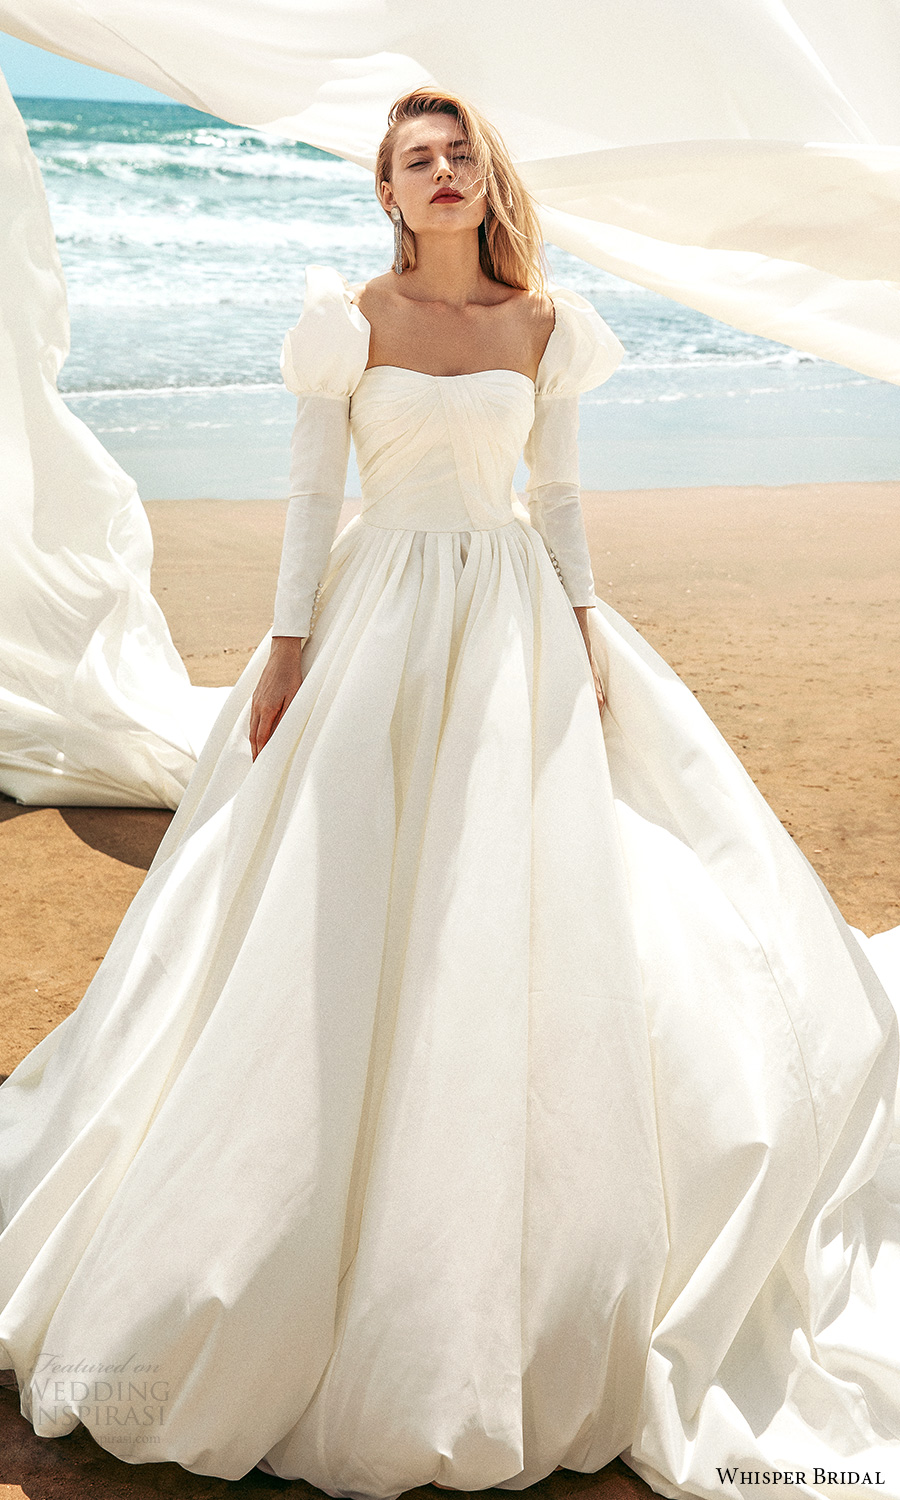 whisper bridal spring 2021 bridal long puff sleeves semi sweetheart neckline clean minimalist a line ball gown wedding dress chapel train (5) mv